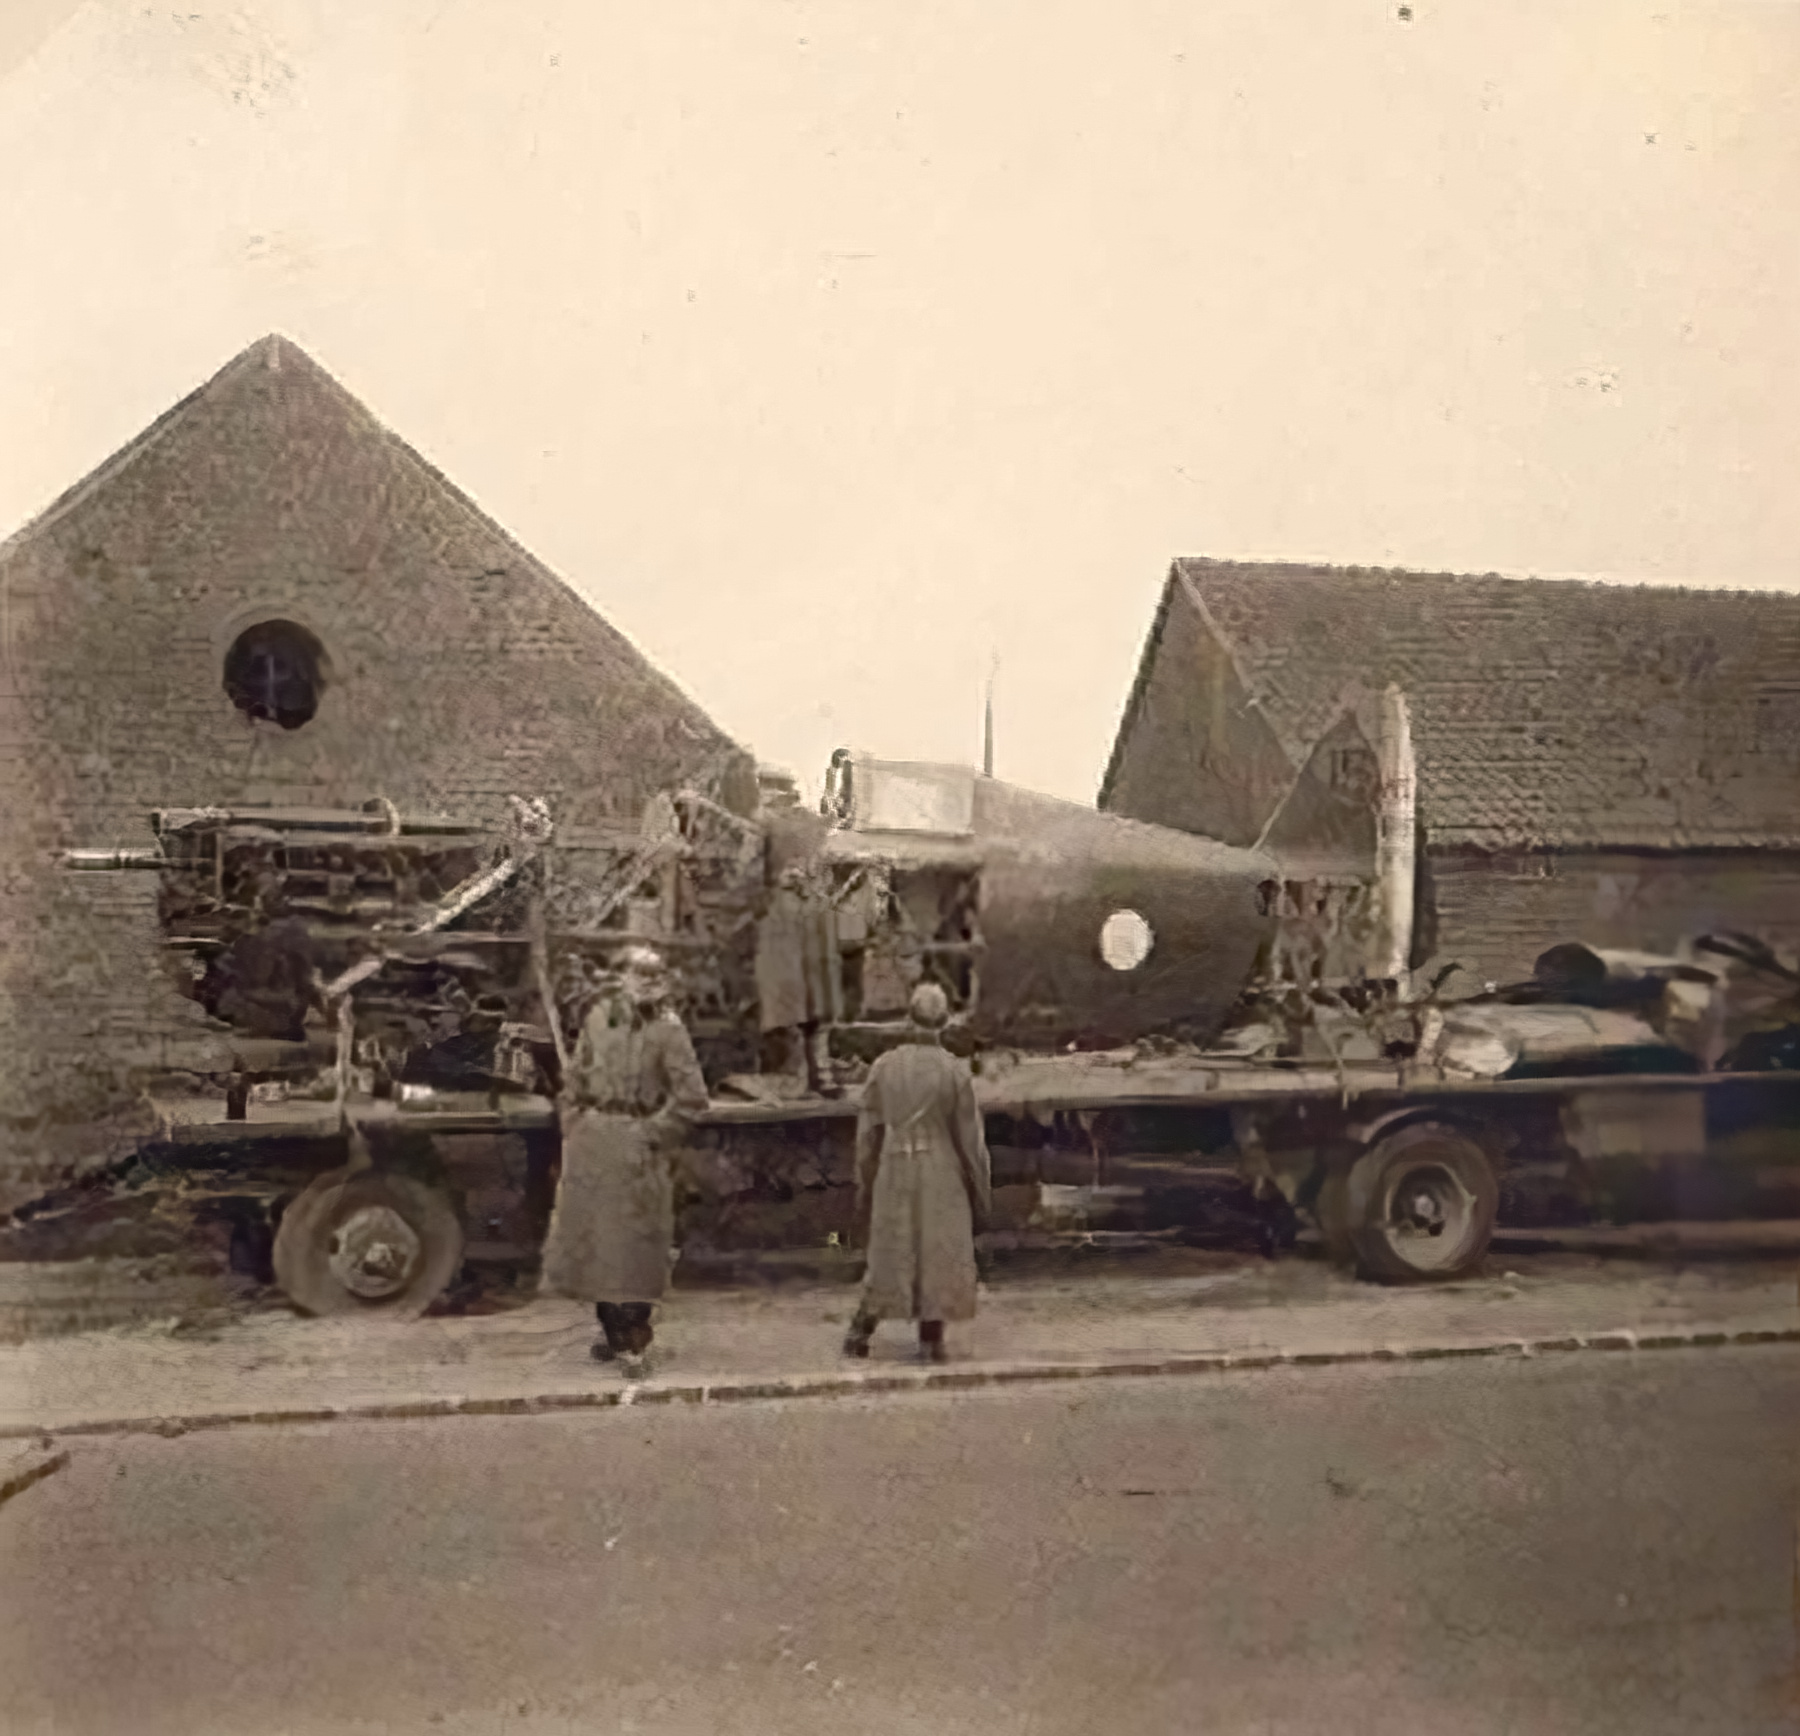 French Airforce Morane Saulnier MS 406C1 Blue 15 captured by German ground forces France May Jun 1940 01